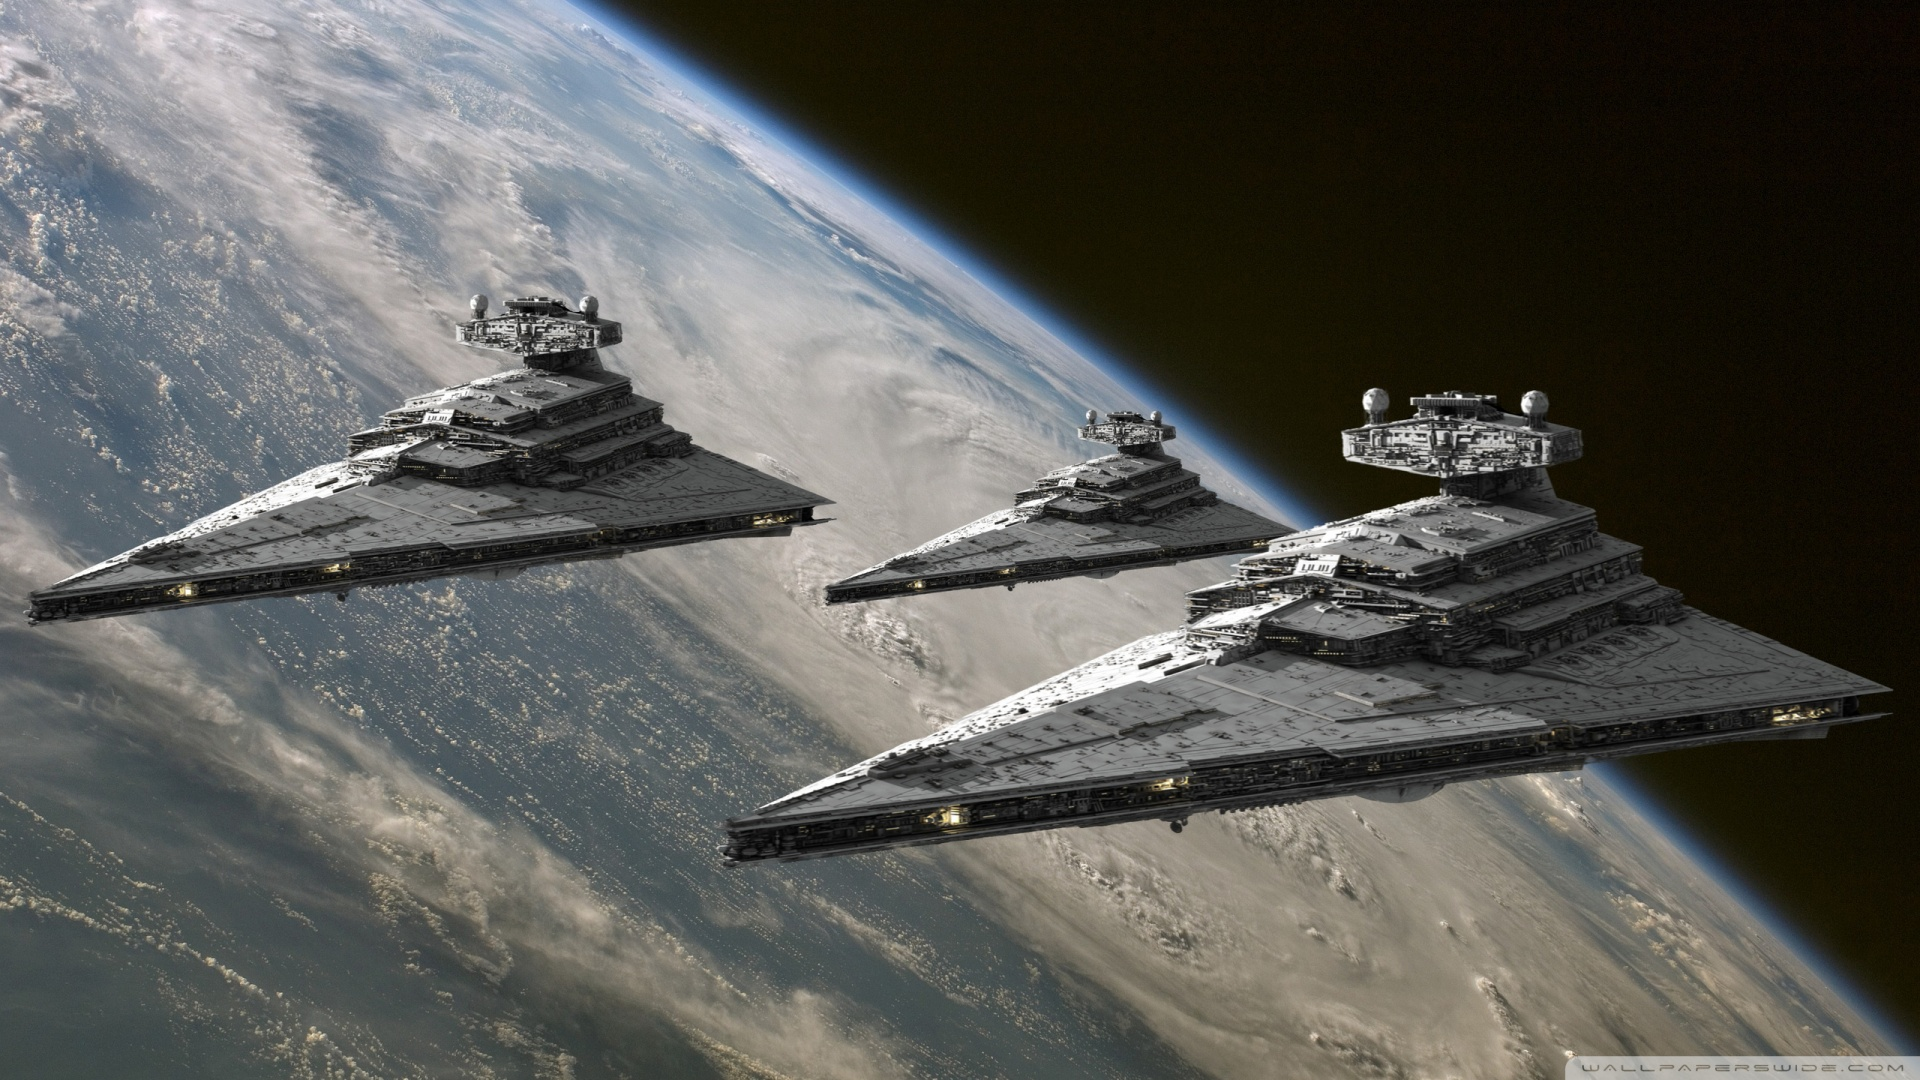 Star Wars Imperial Space Ships 1920x1080 HD Wallpaper Movies 1920x1080